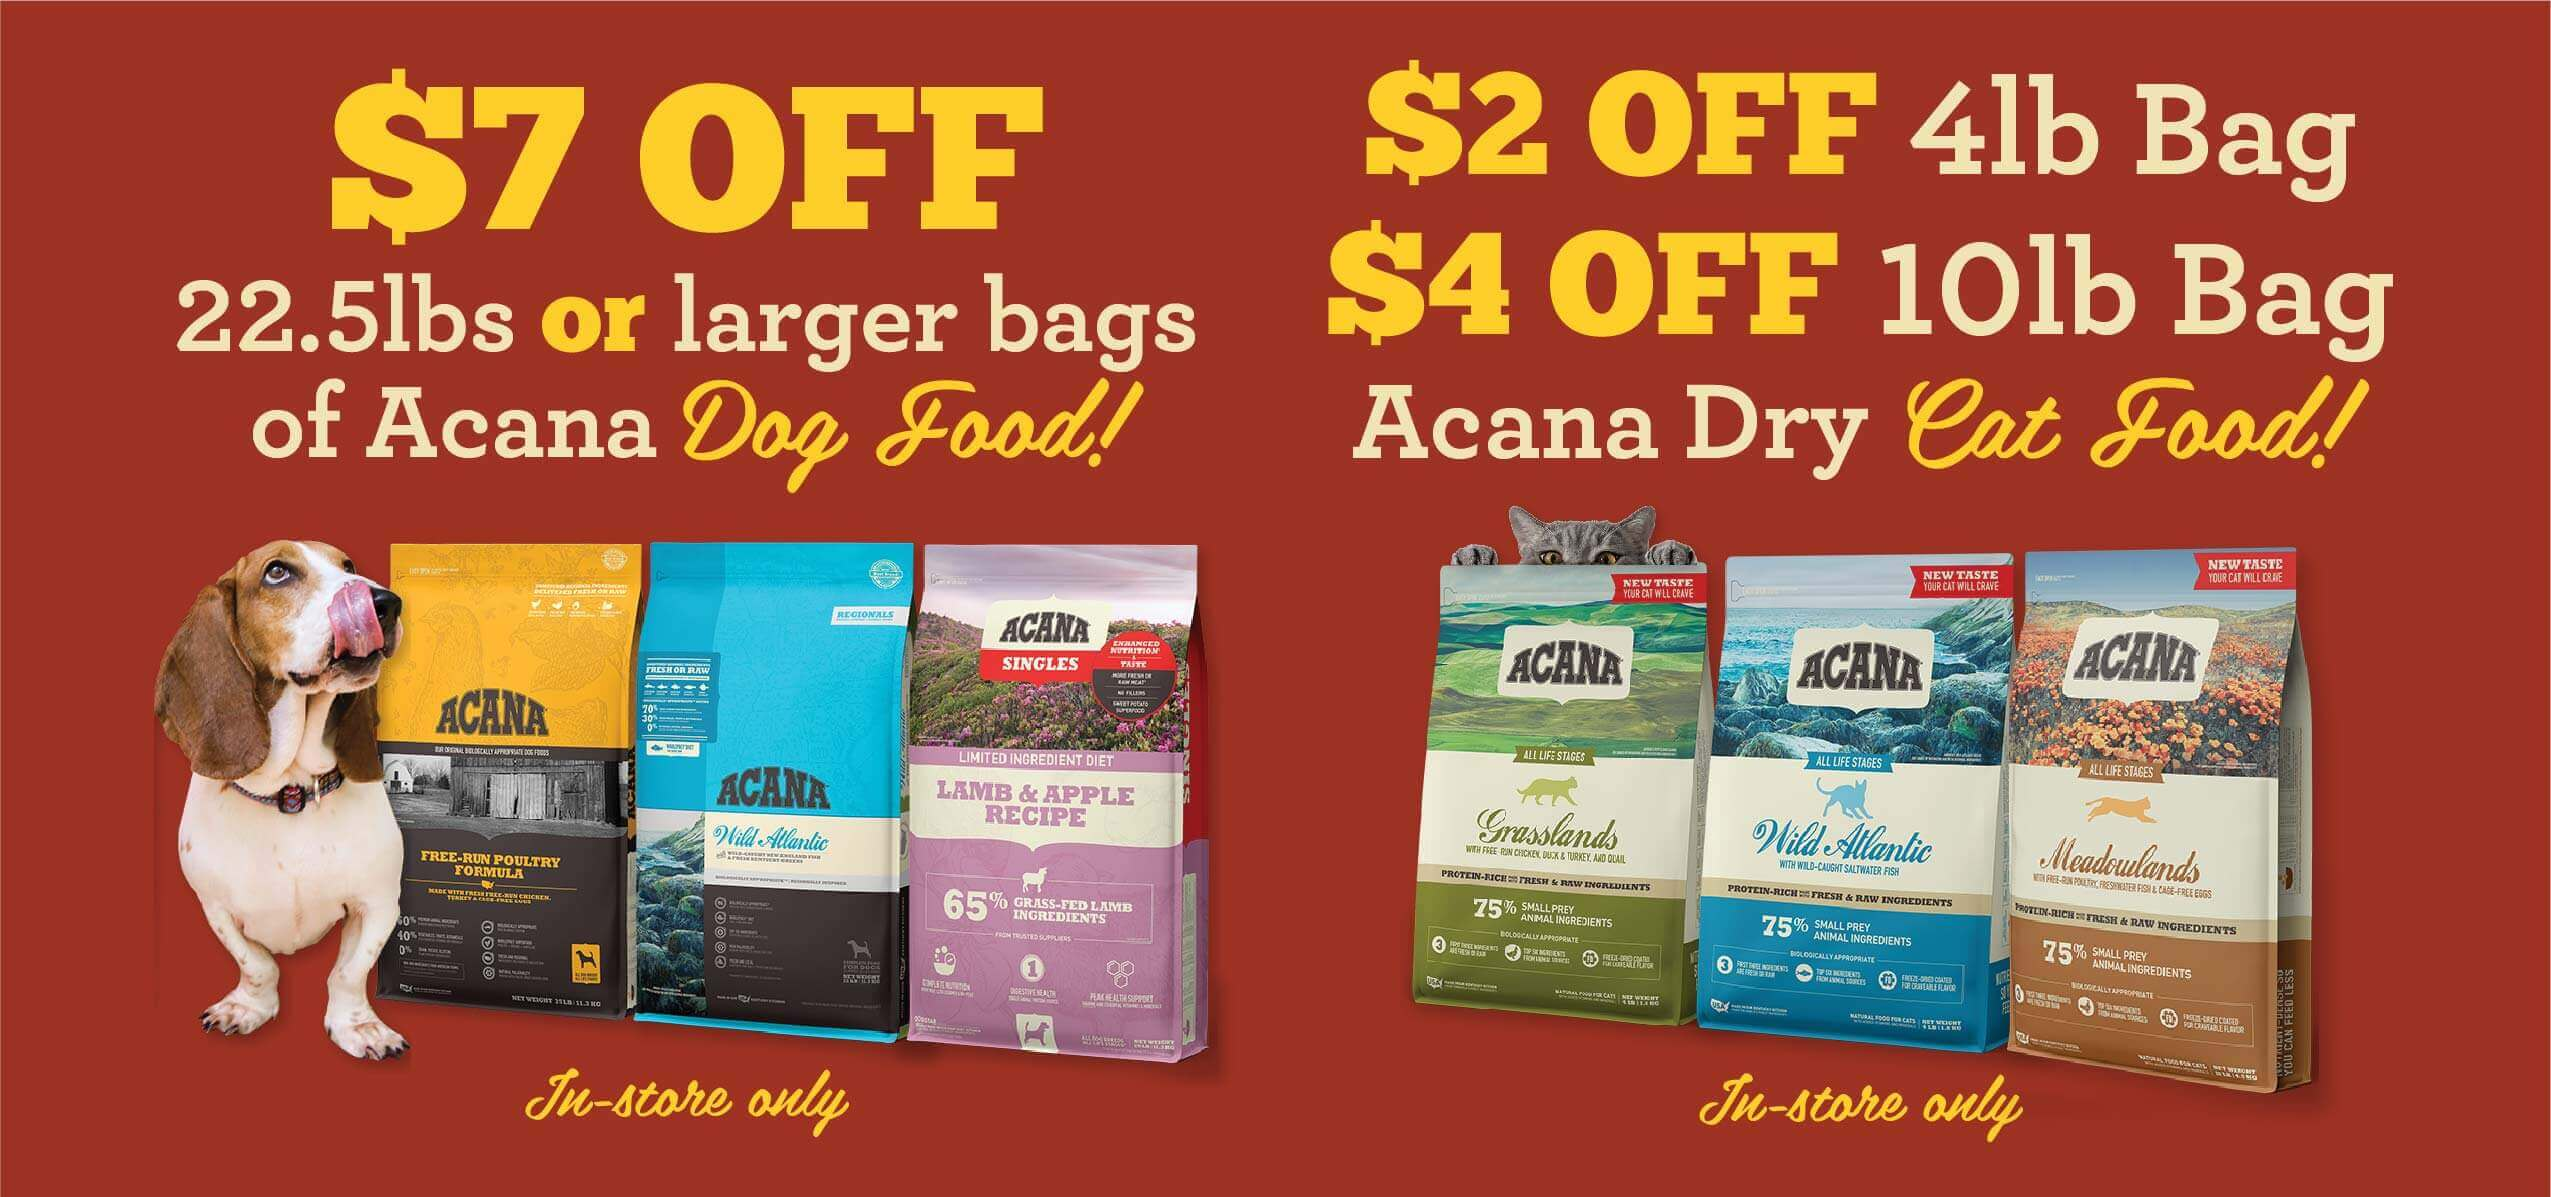 Acana dog food - Save $7 on 22.5 or larger bags, Save up to $4 on Acana Cat Food - In Store Only